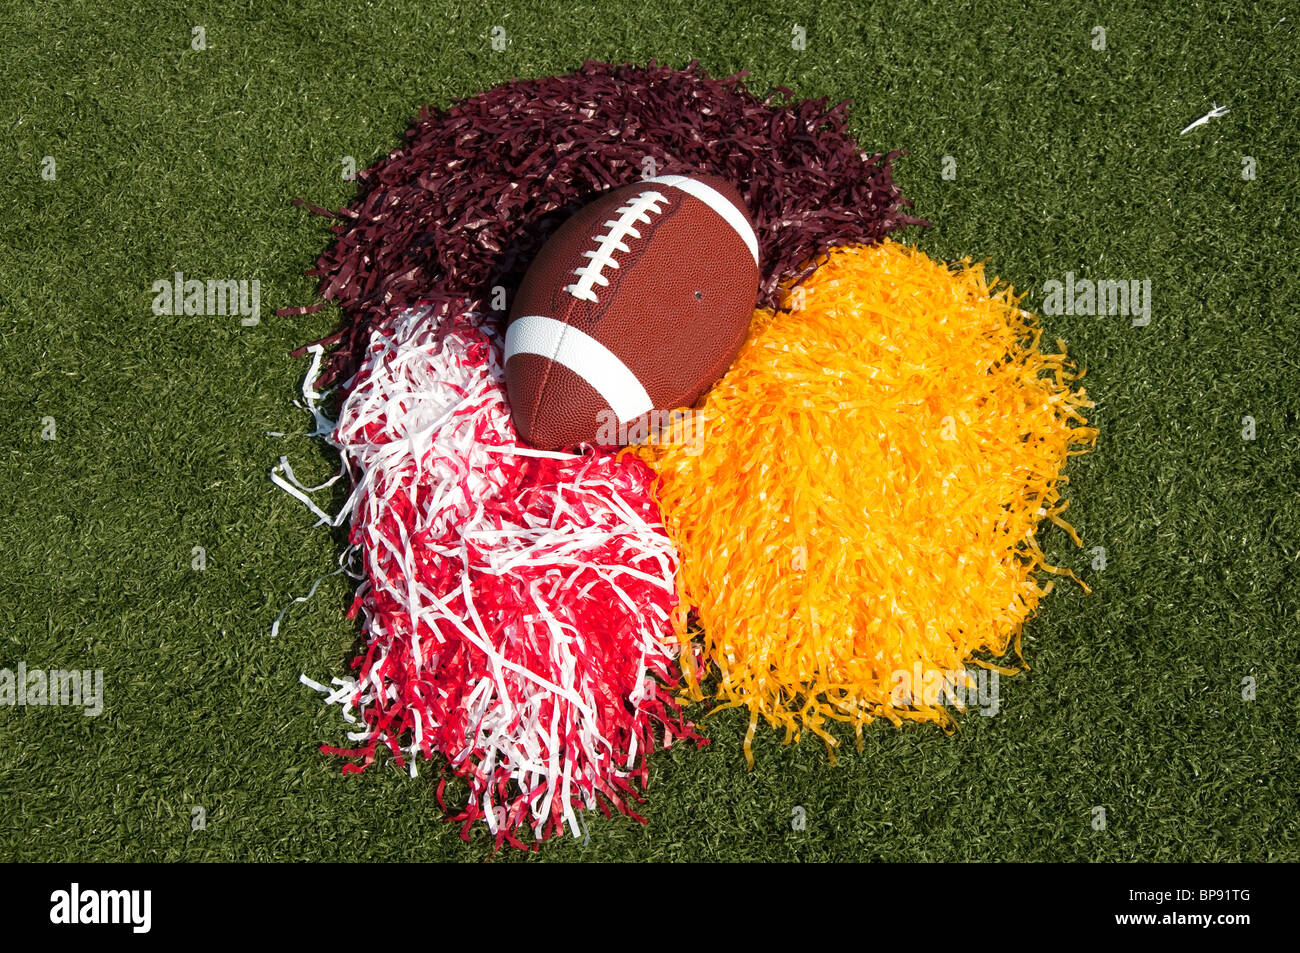 American football and pom poms on field. - Stock Image